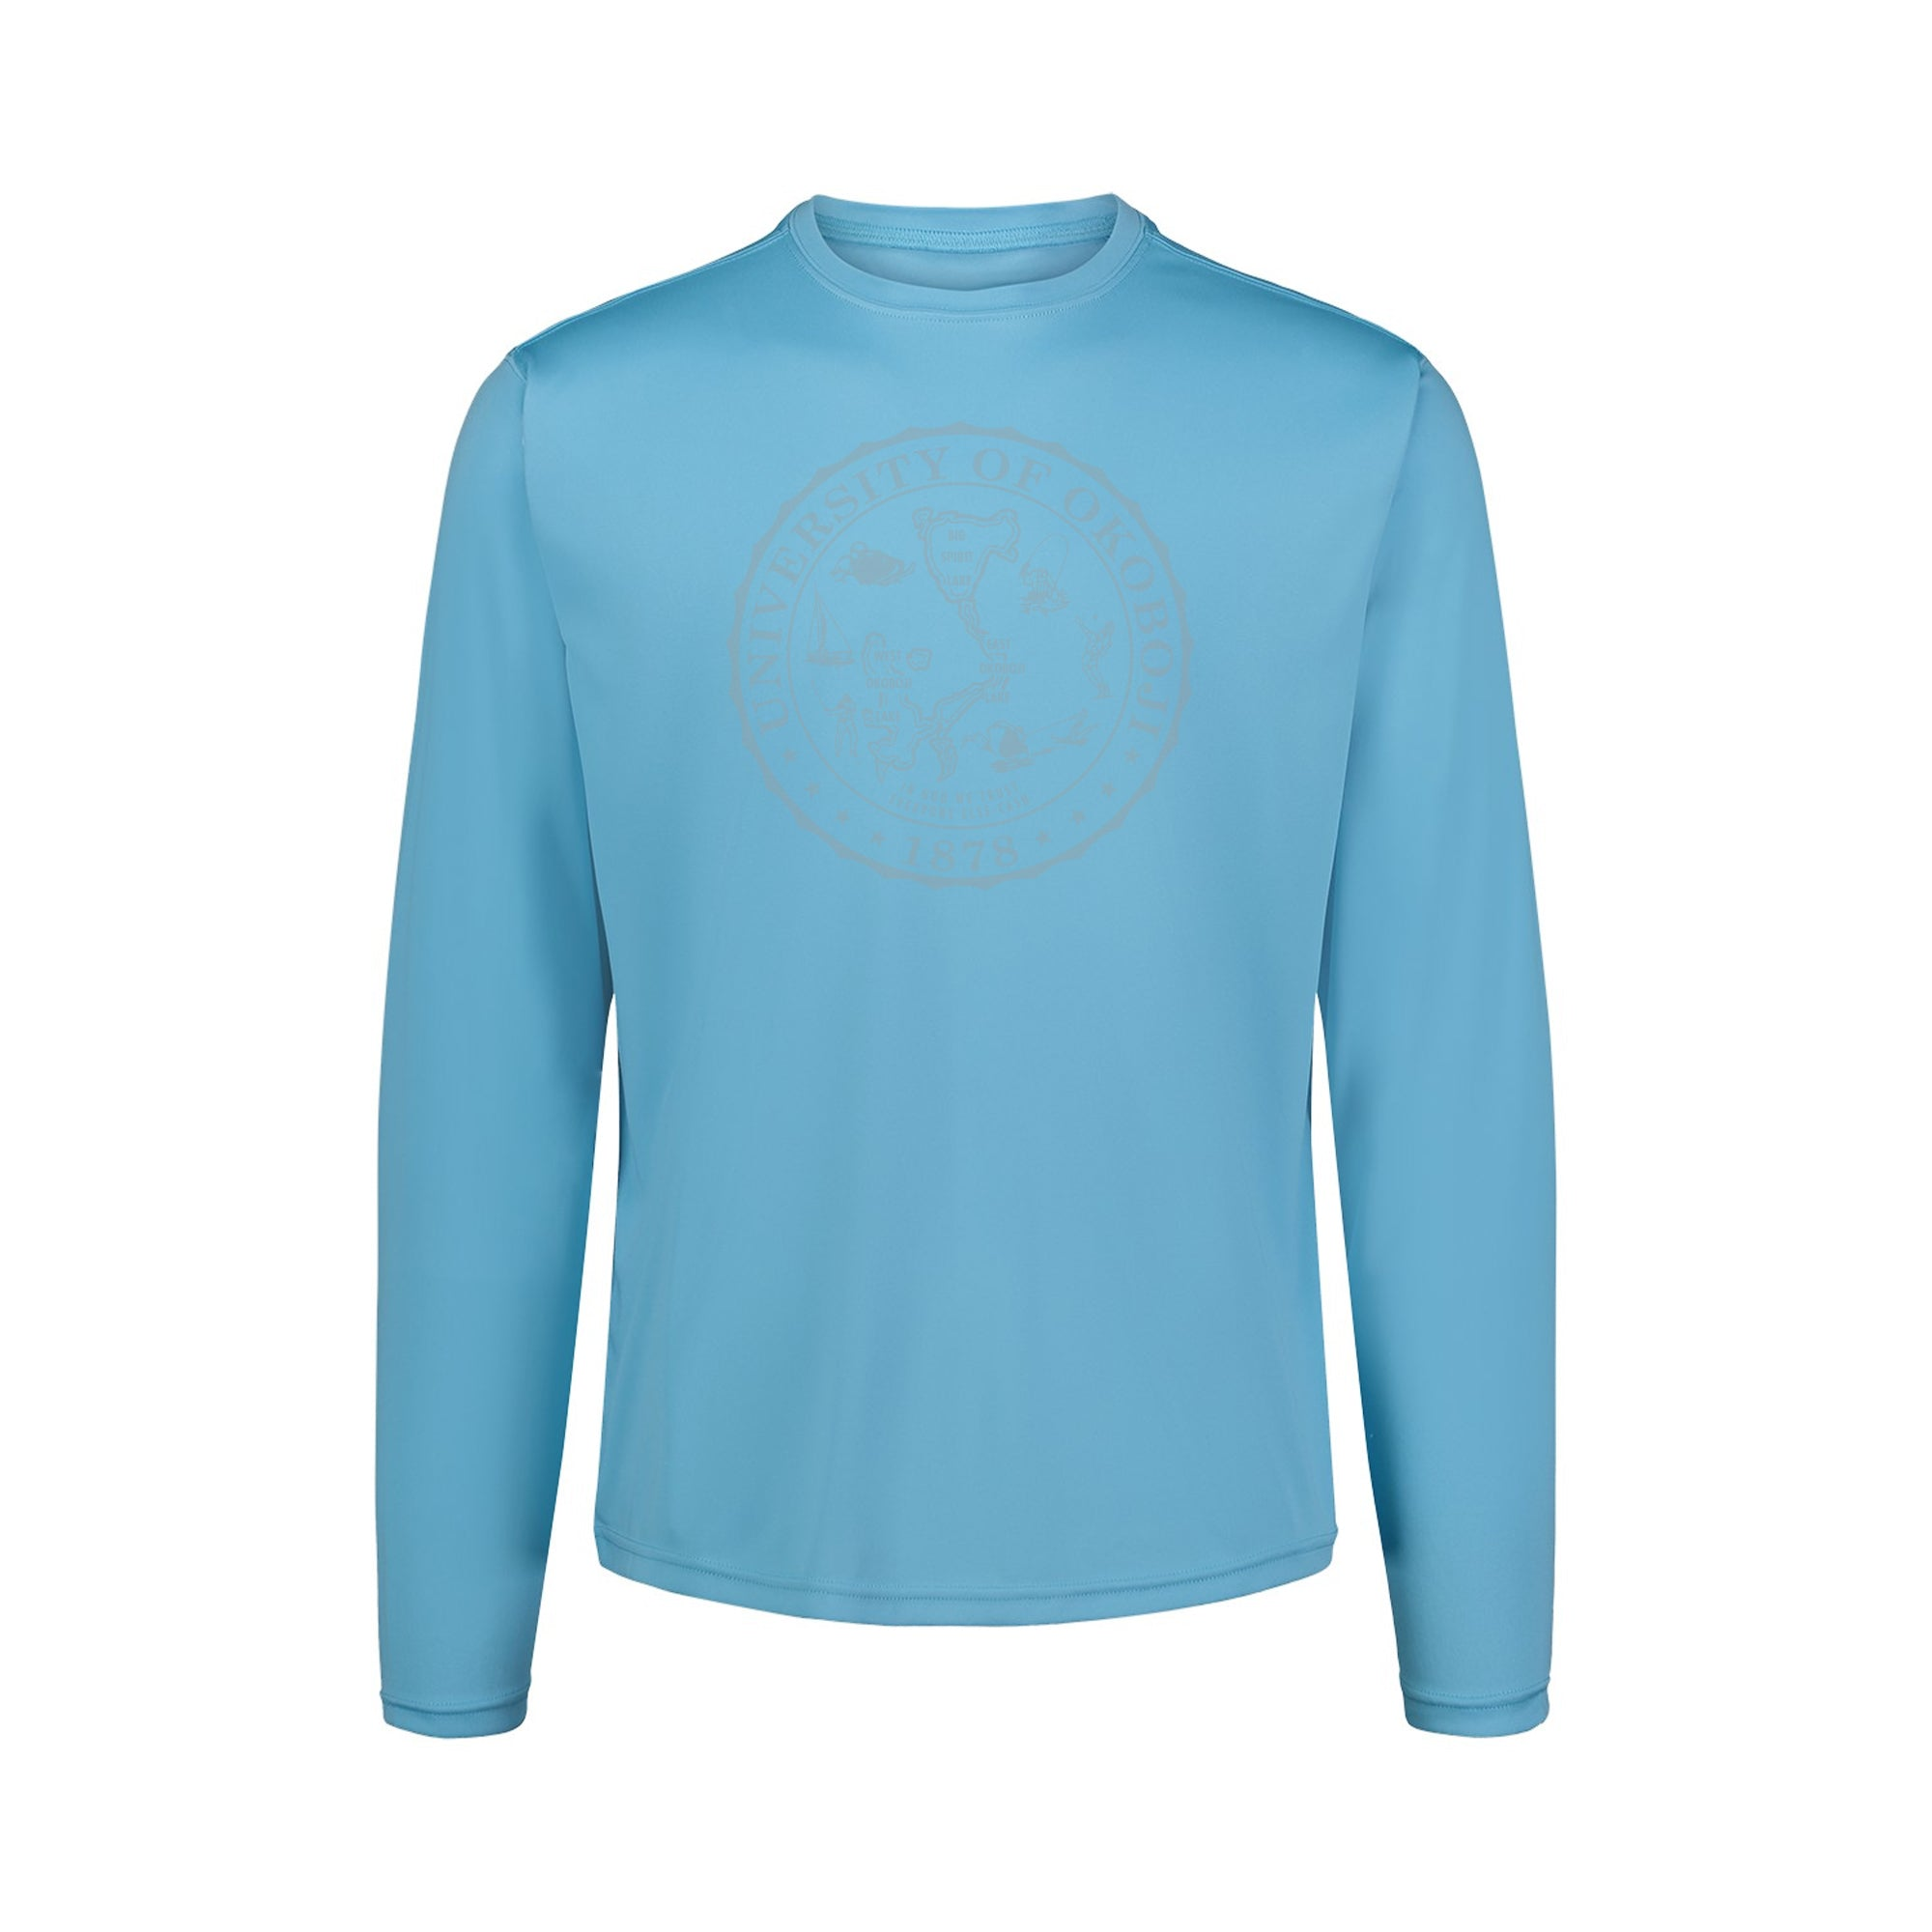 University of Okoboji Sunproof™ Long Sleeve Shirt - Cali Blue (UPF 50)